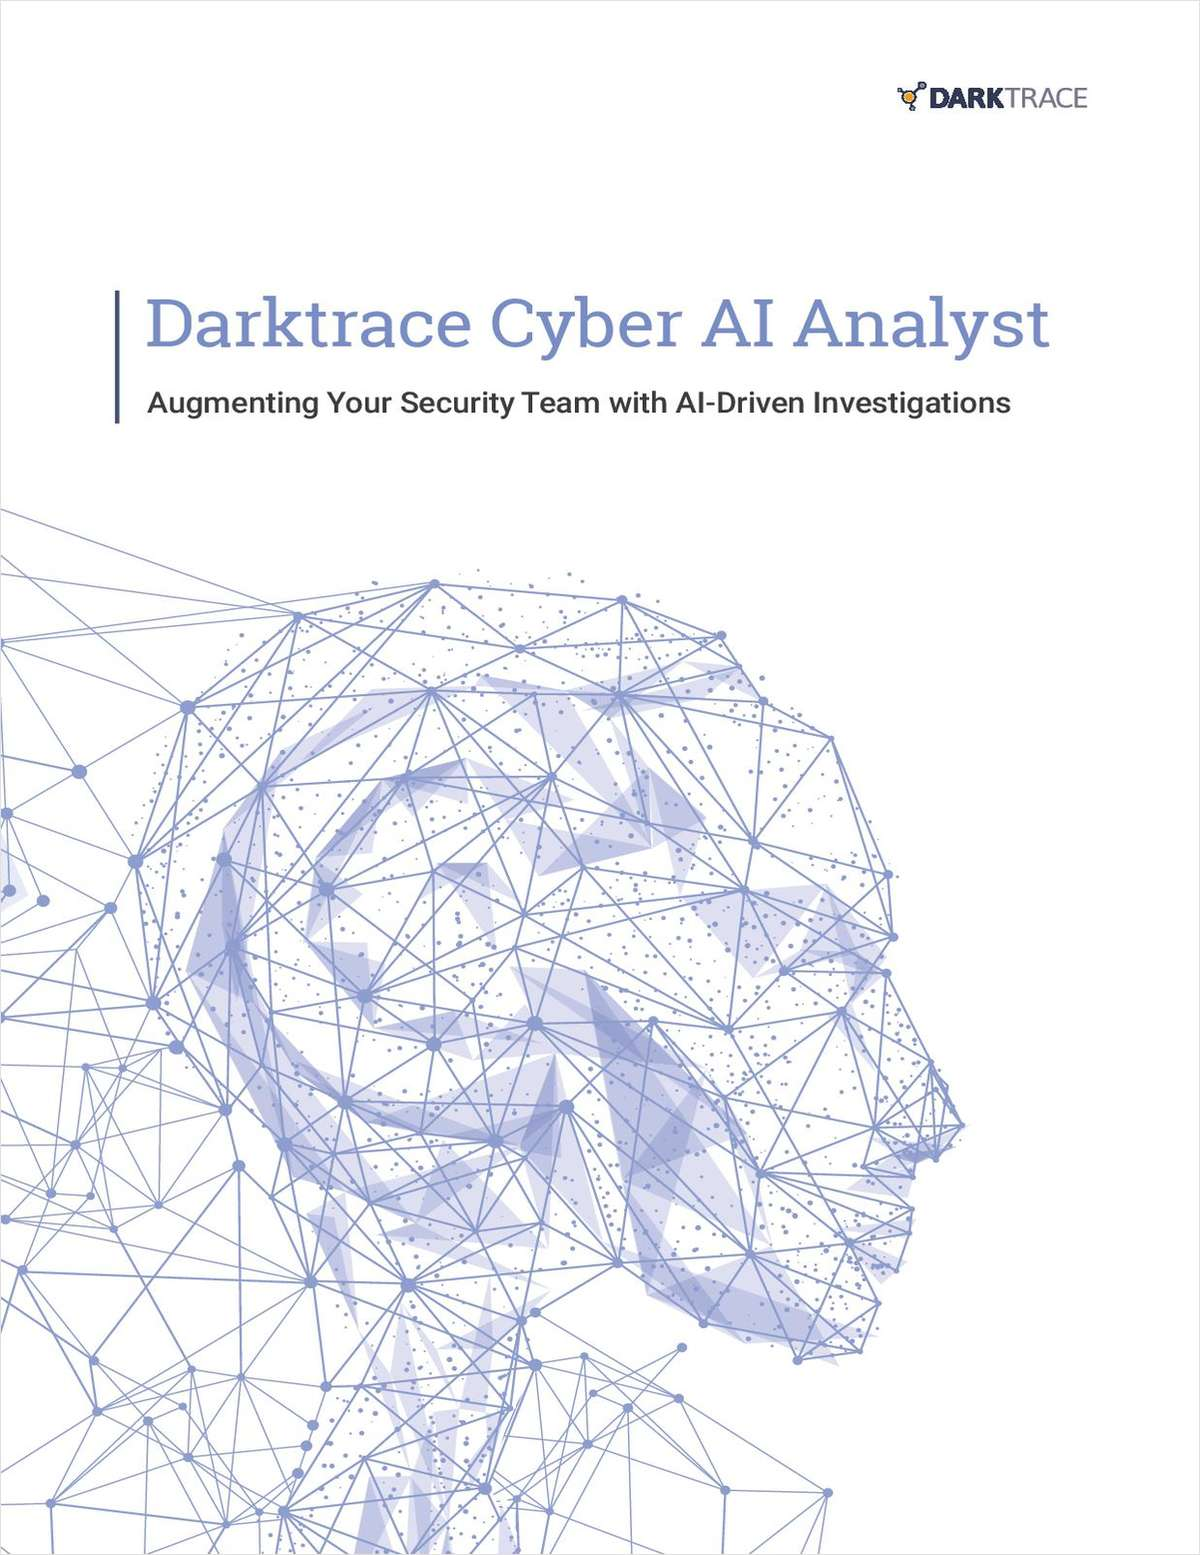 Darktrace Cyber AI Analyst: Augmenting Your Security Team with AI-Driven Investigations